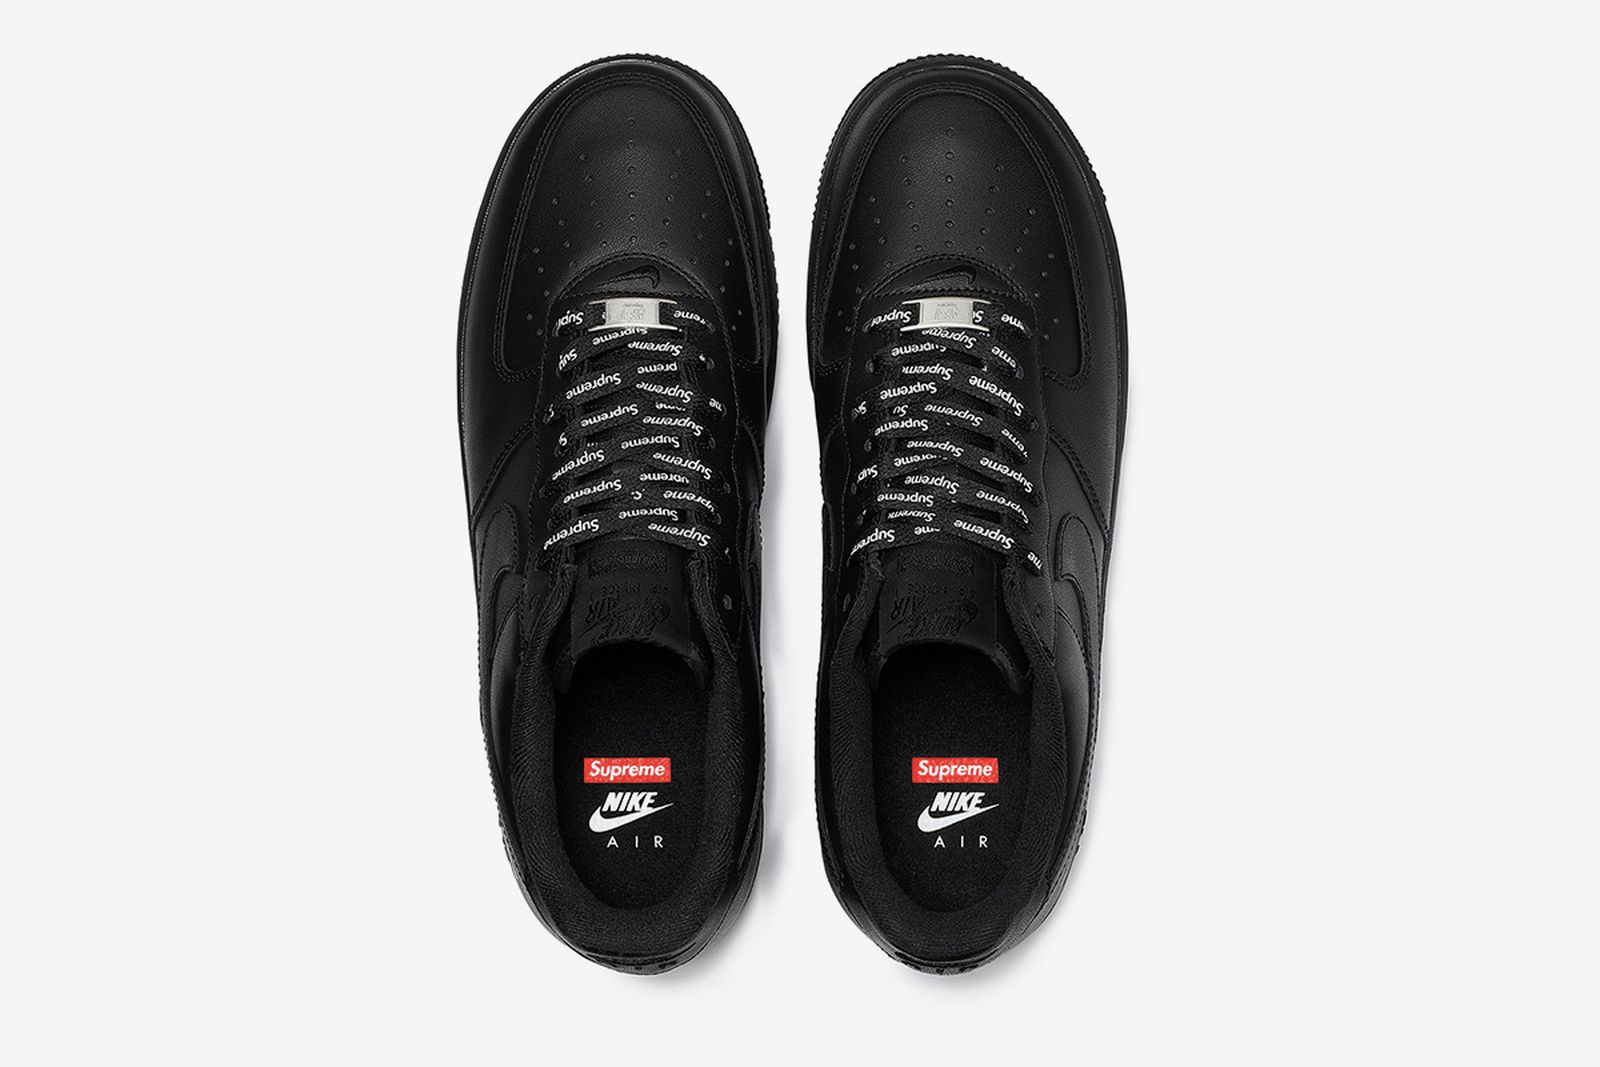 supreme-nike-air-force-1-low-2020-release-date-price-04